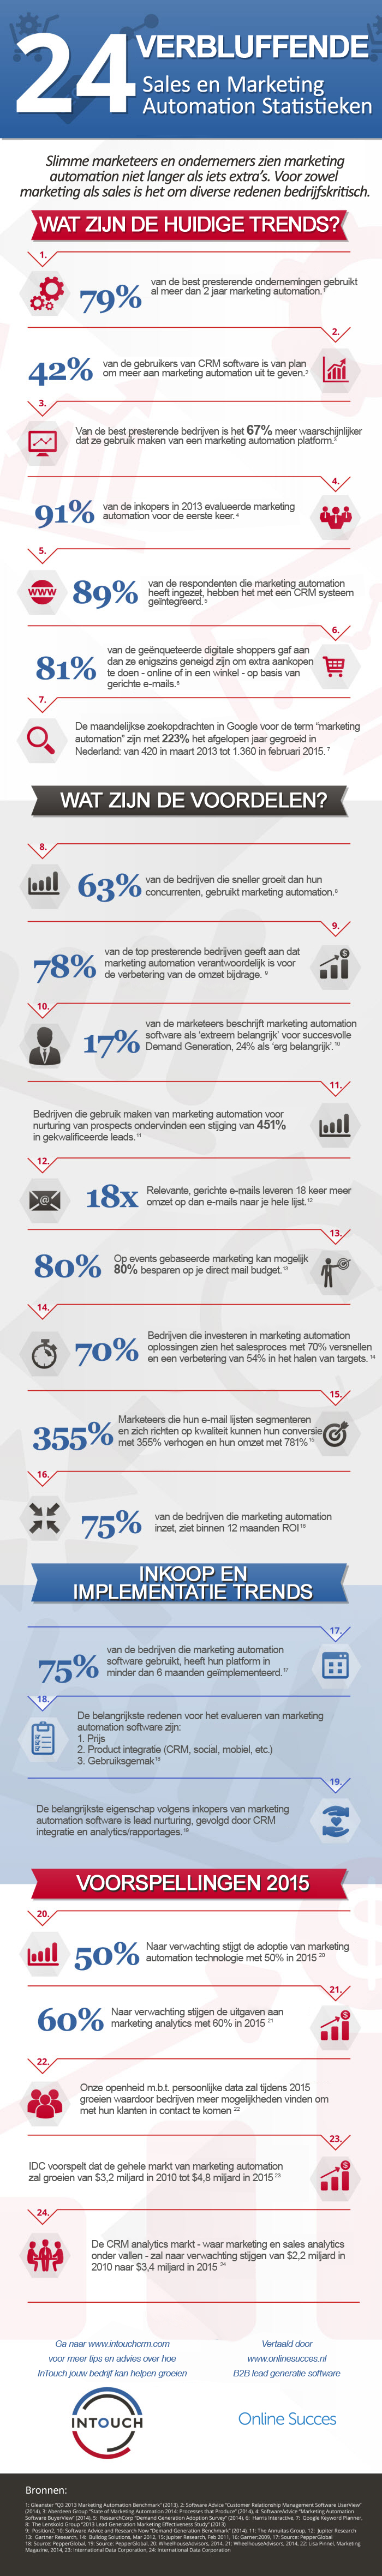 marketing-automation-infographic-24-verbluffende-statistieken